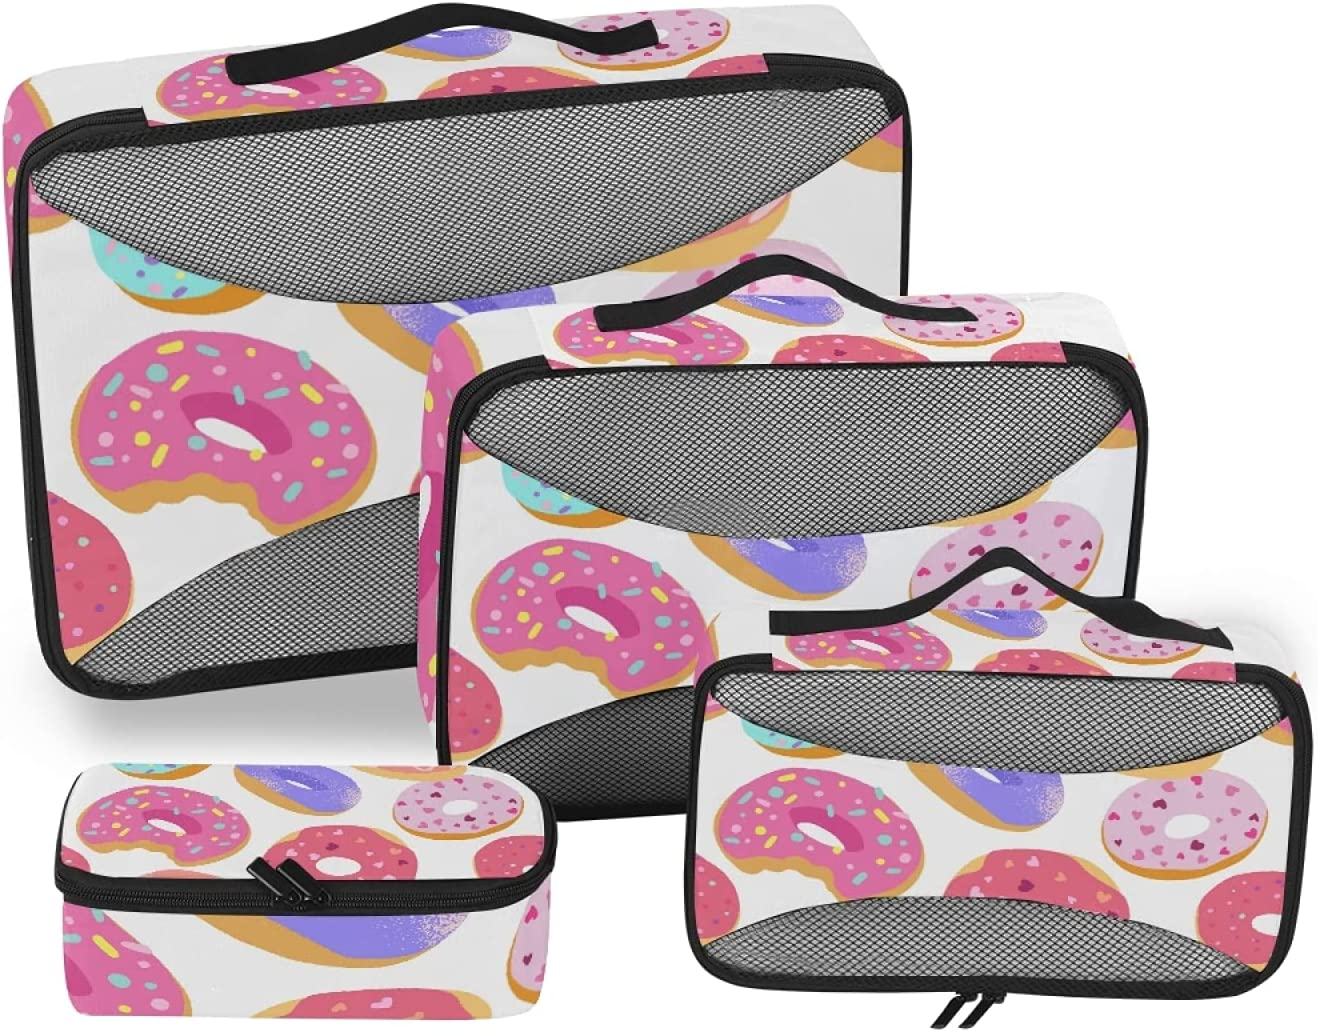 Donuts Packing Storage Bag 4-Pcs Time sale St Organizer Max 42% OFF Travel Accessories